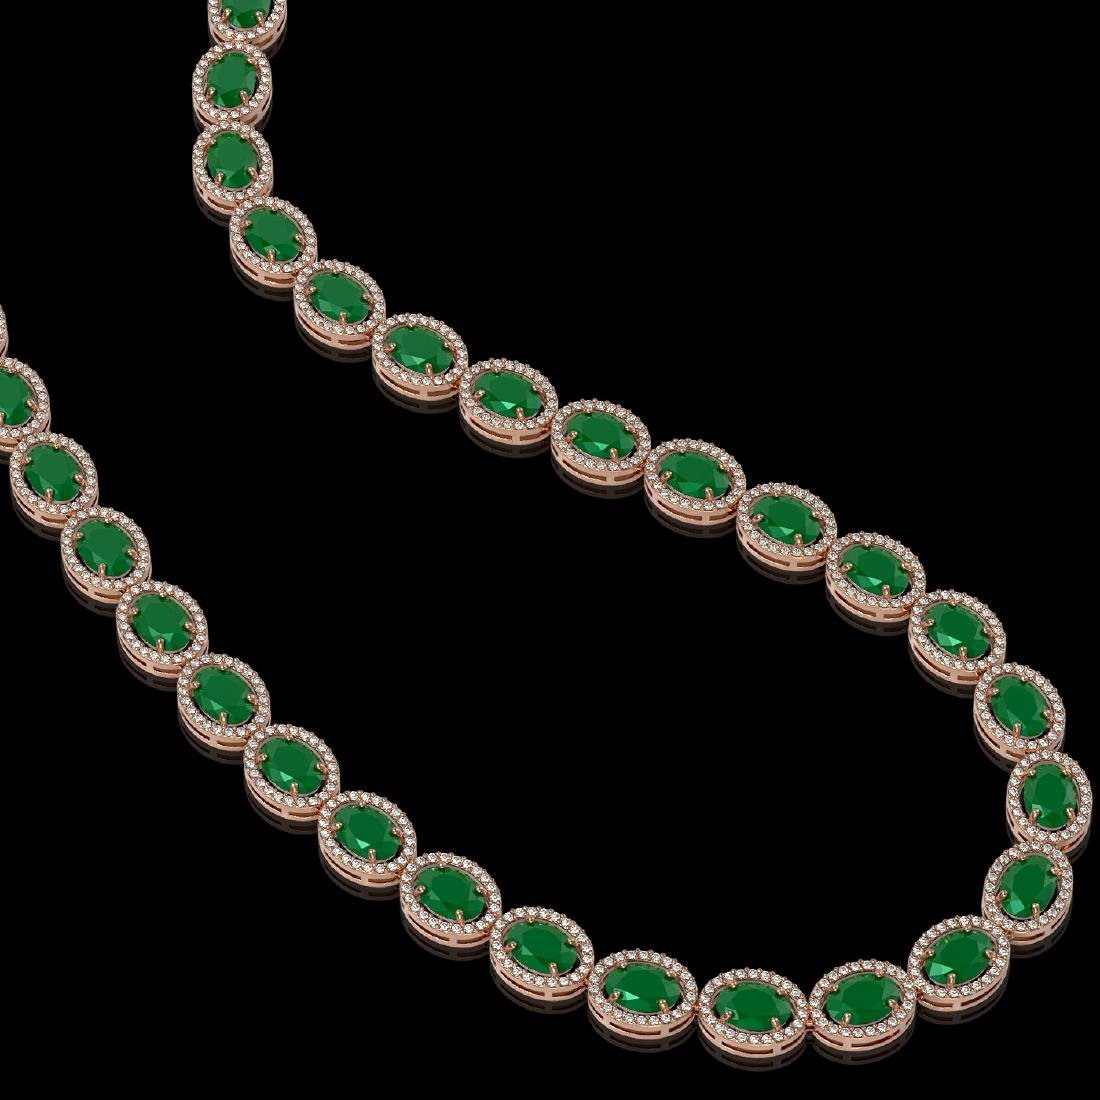 52.15 CTW Emerald & Diamond Halo Necklace 10K Rose Gold - 2